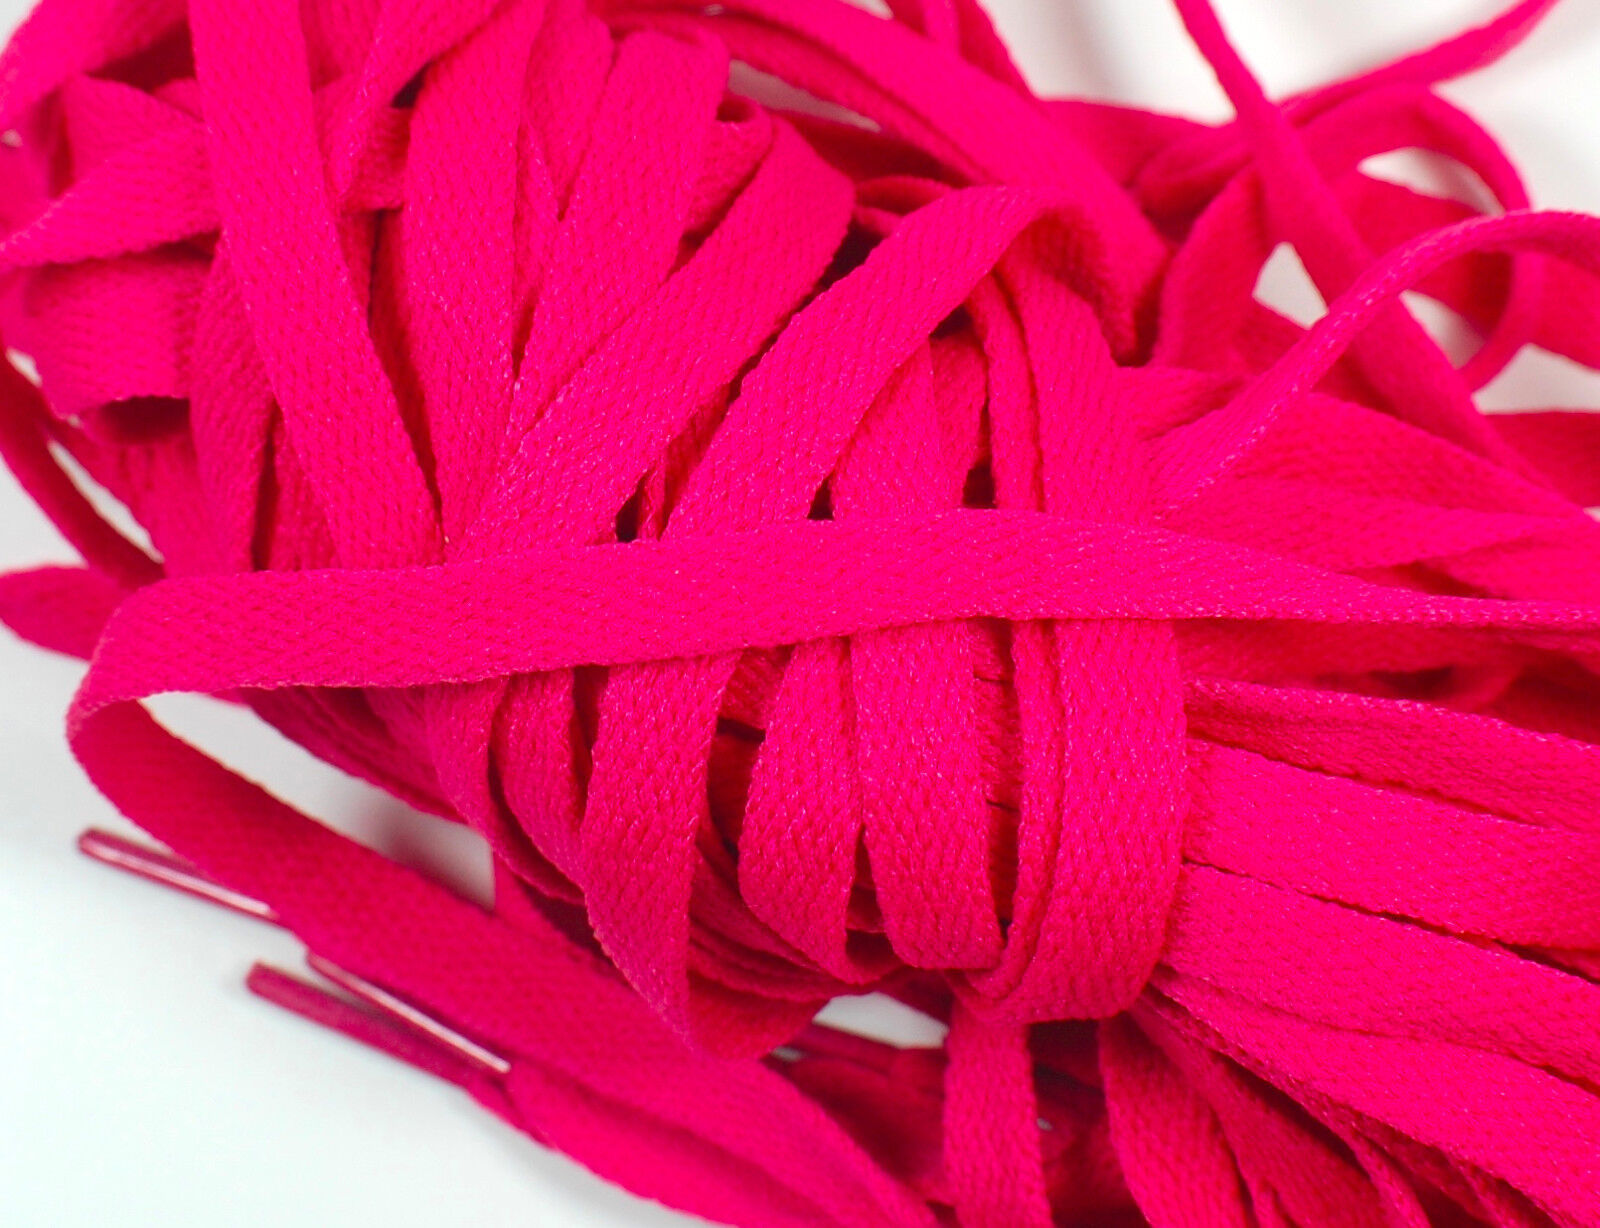 Eyelets 5mm Thick Sneakers Shoelace Round Shoelace Hot Pink 45 7 Pr